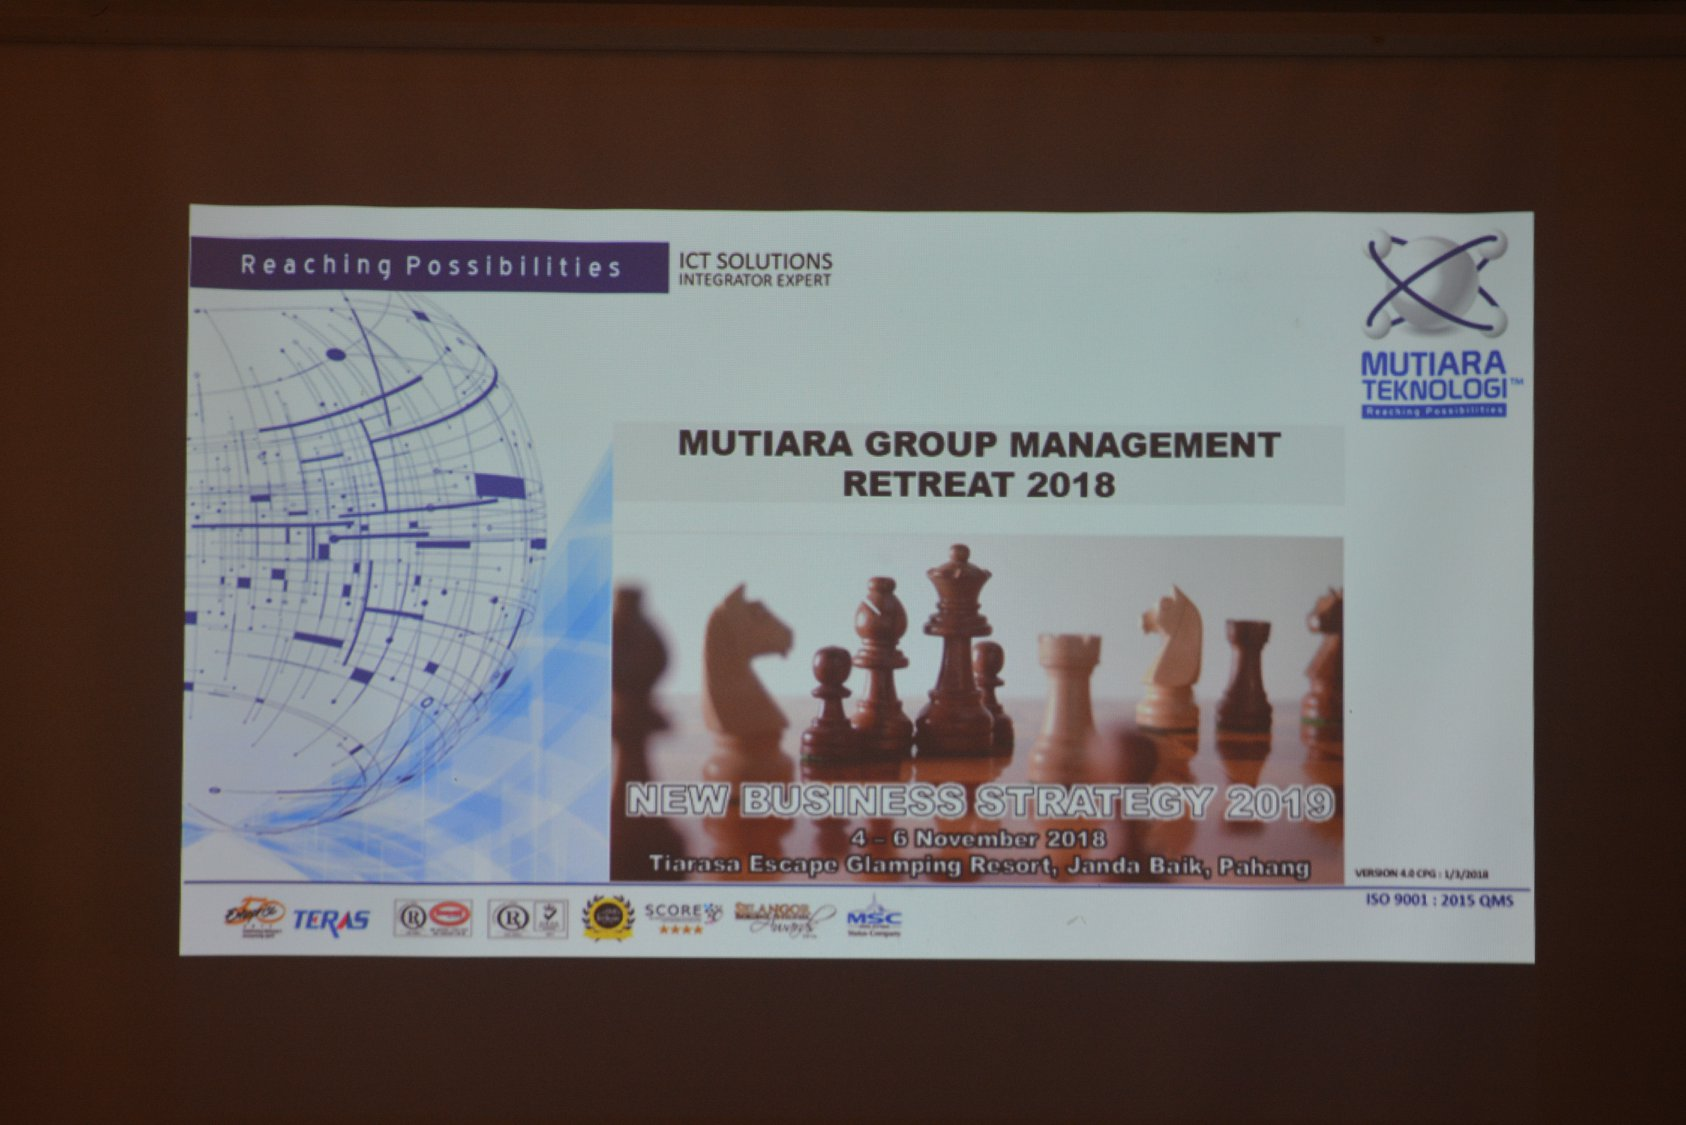 2018: Mutiara Group Management Retreat